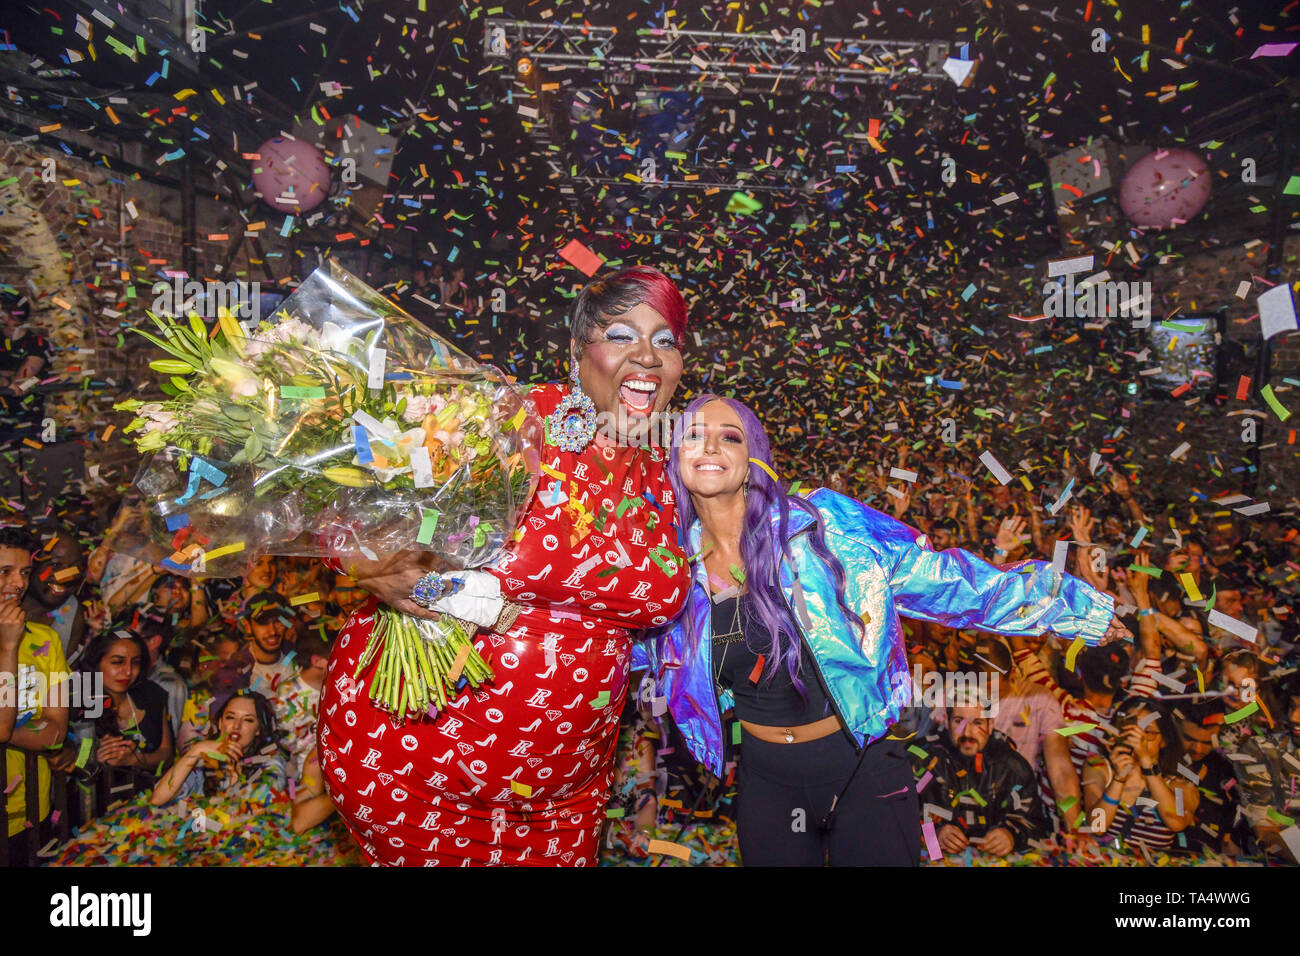 Tulisa launches her new single 'Daddy' at G-A-Y tonight. In a 30-minute set packed with hits and an NDUBZ medley, Tulisa was also joined by 'RuPaul's Drag Race' star Latrice Royale who had performed earlier that evening.  Featuring: Tulisa, Latrice Royale Where: London, United Kingdom When: 21 Apr 2019 Credit: Chris Jepson/WENN.com - Stock Image